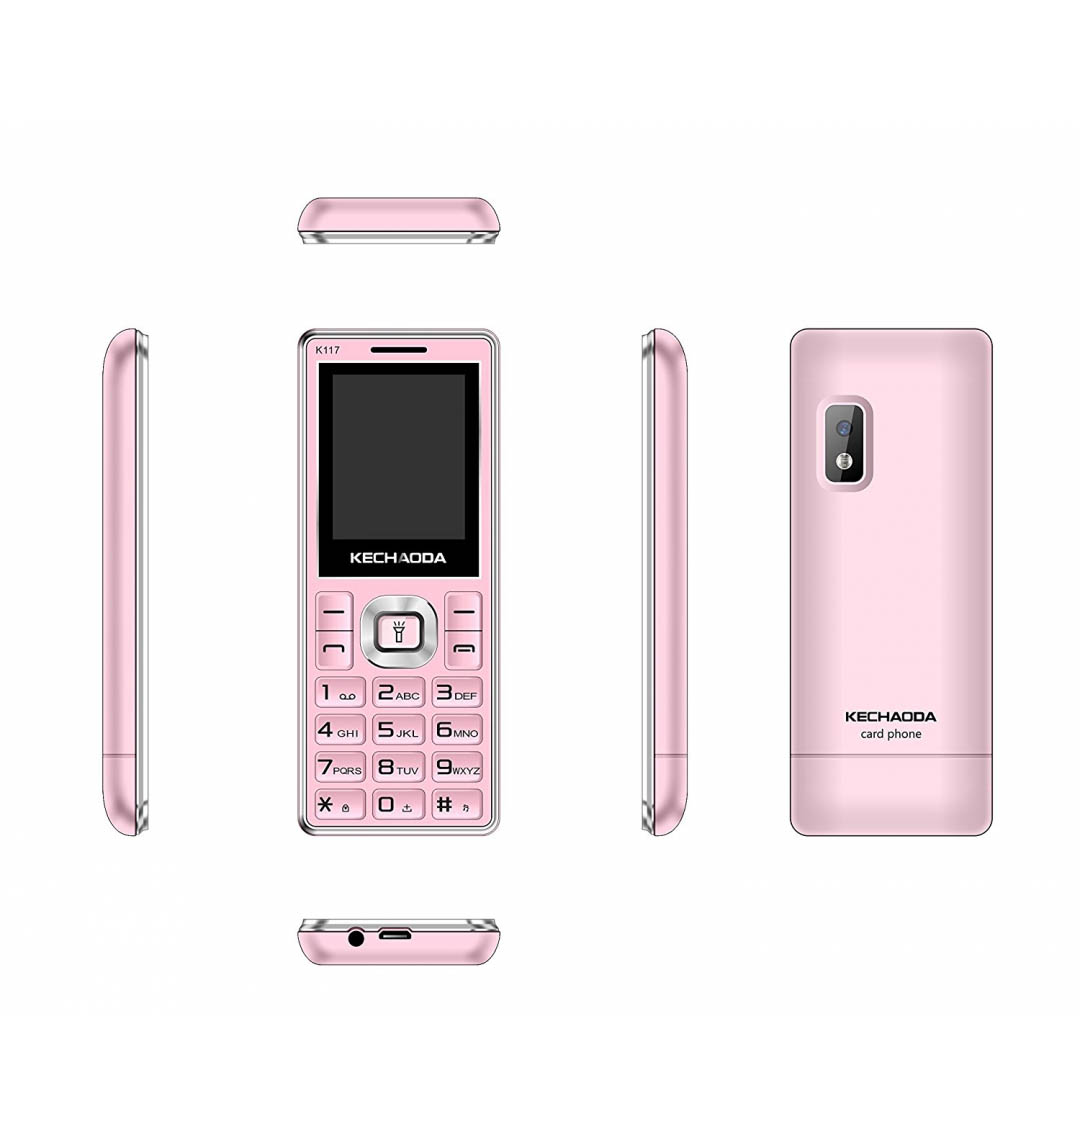 kechaoda k33 card phone camera with flash bluetooth dialler mini phone new(Grey,Gold,Rose Gold)